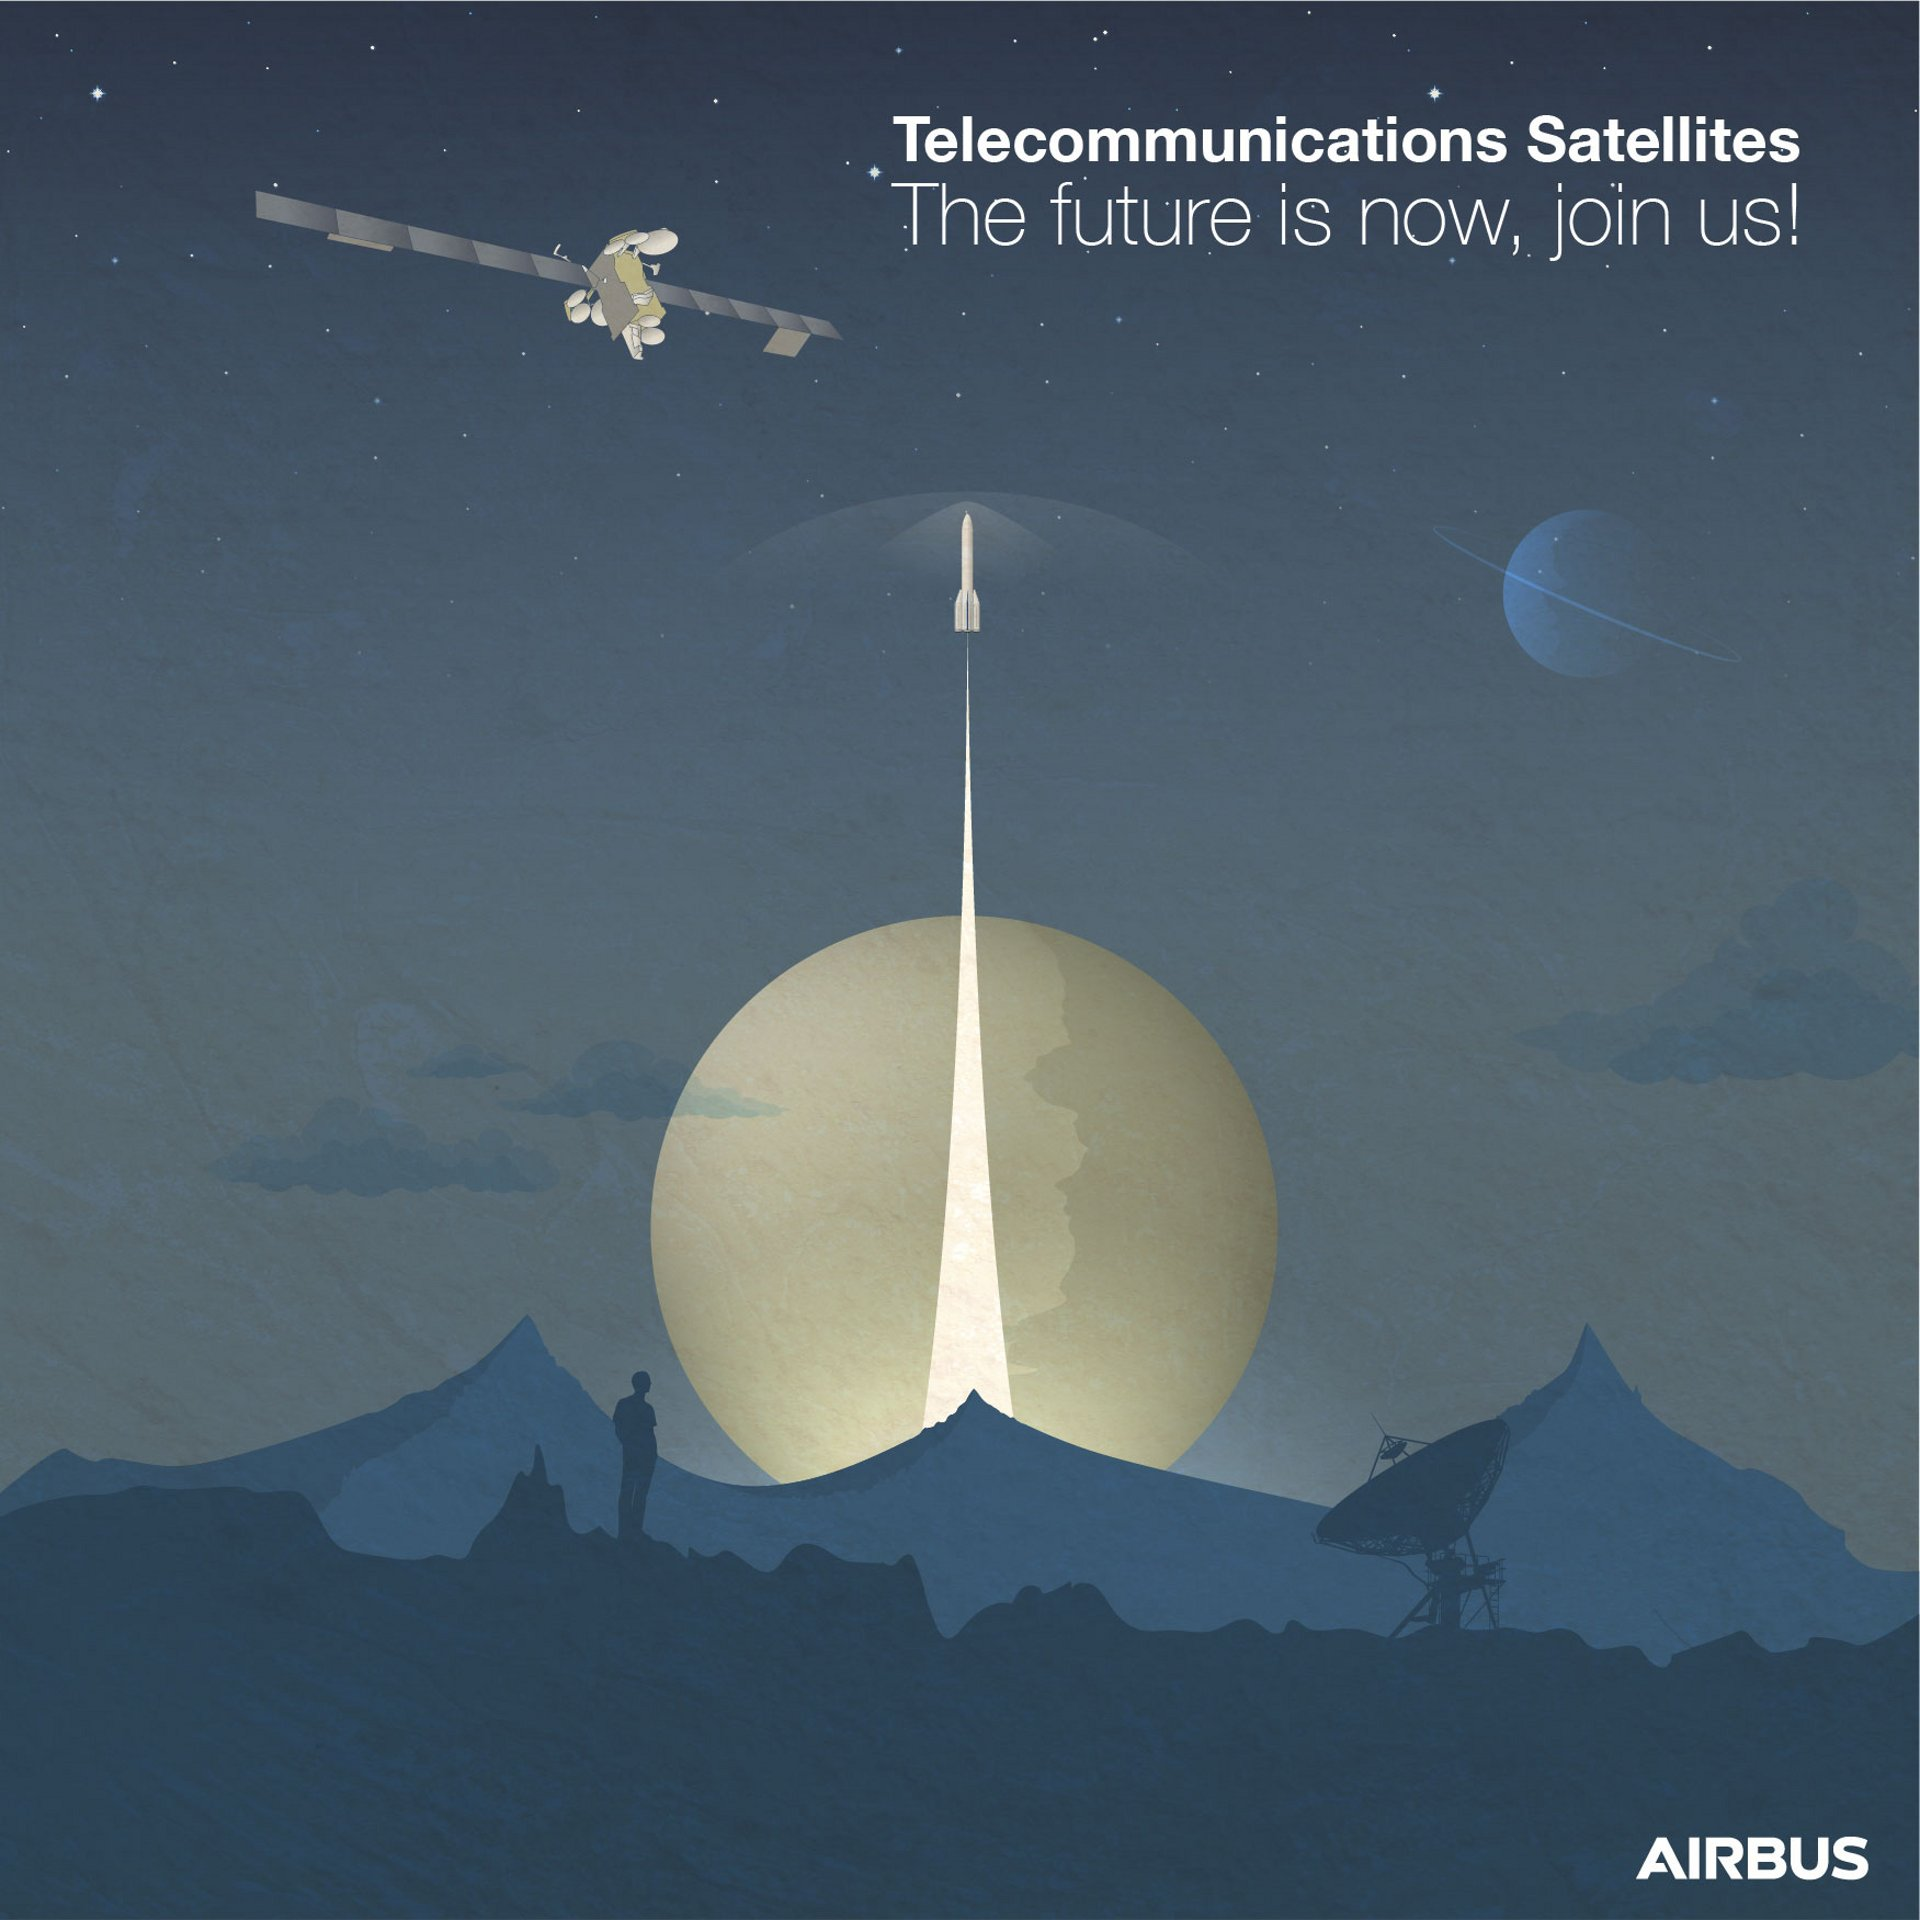 We are hiring in Telecommunications Satellites